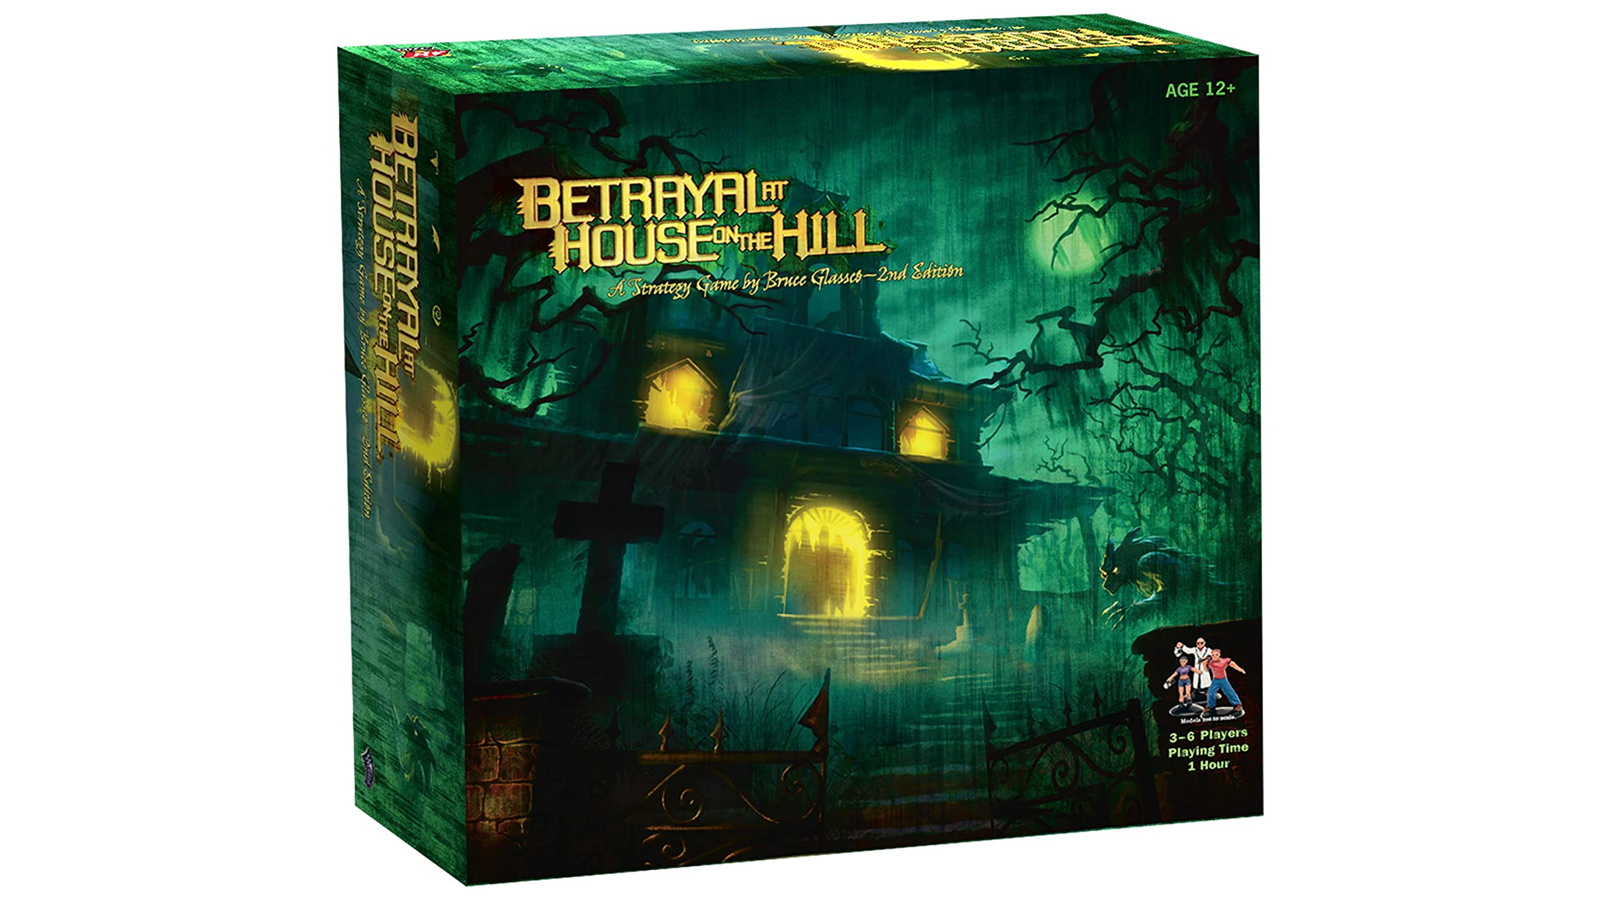 Scare-ific! 'Betrayal at House on the Hill' is a Horror-tastic Board Game